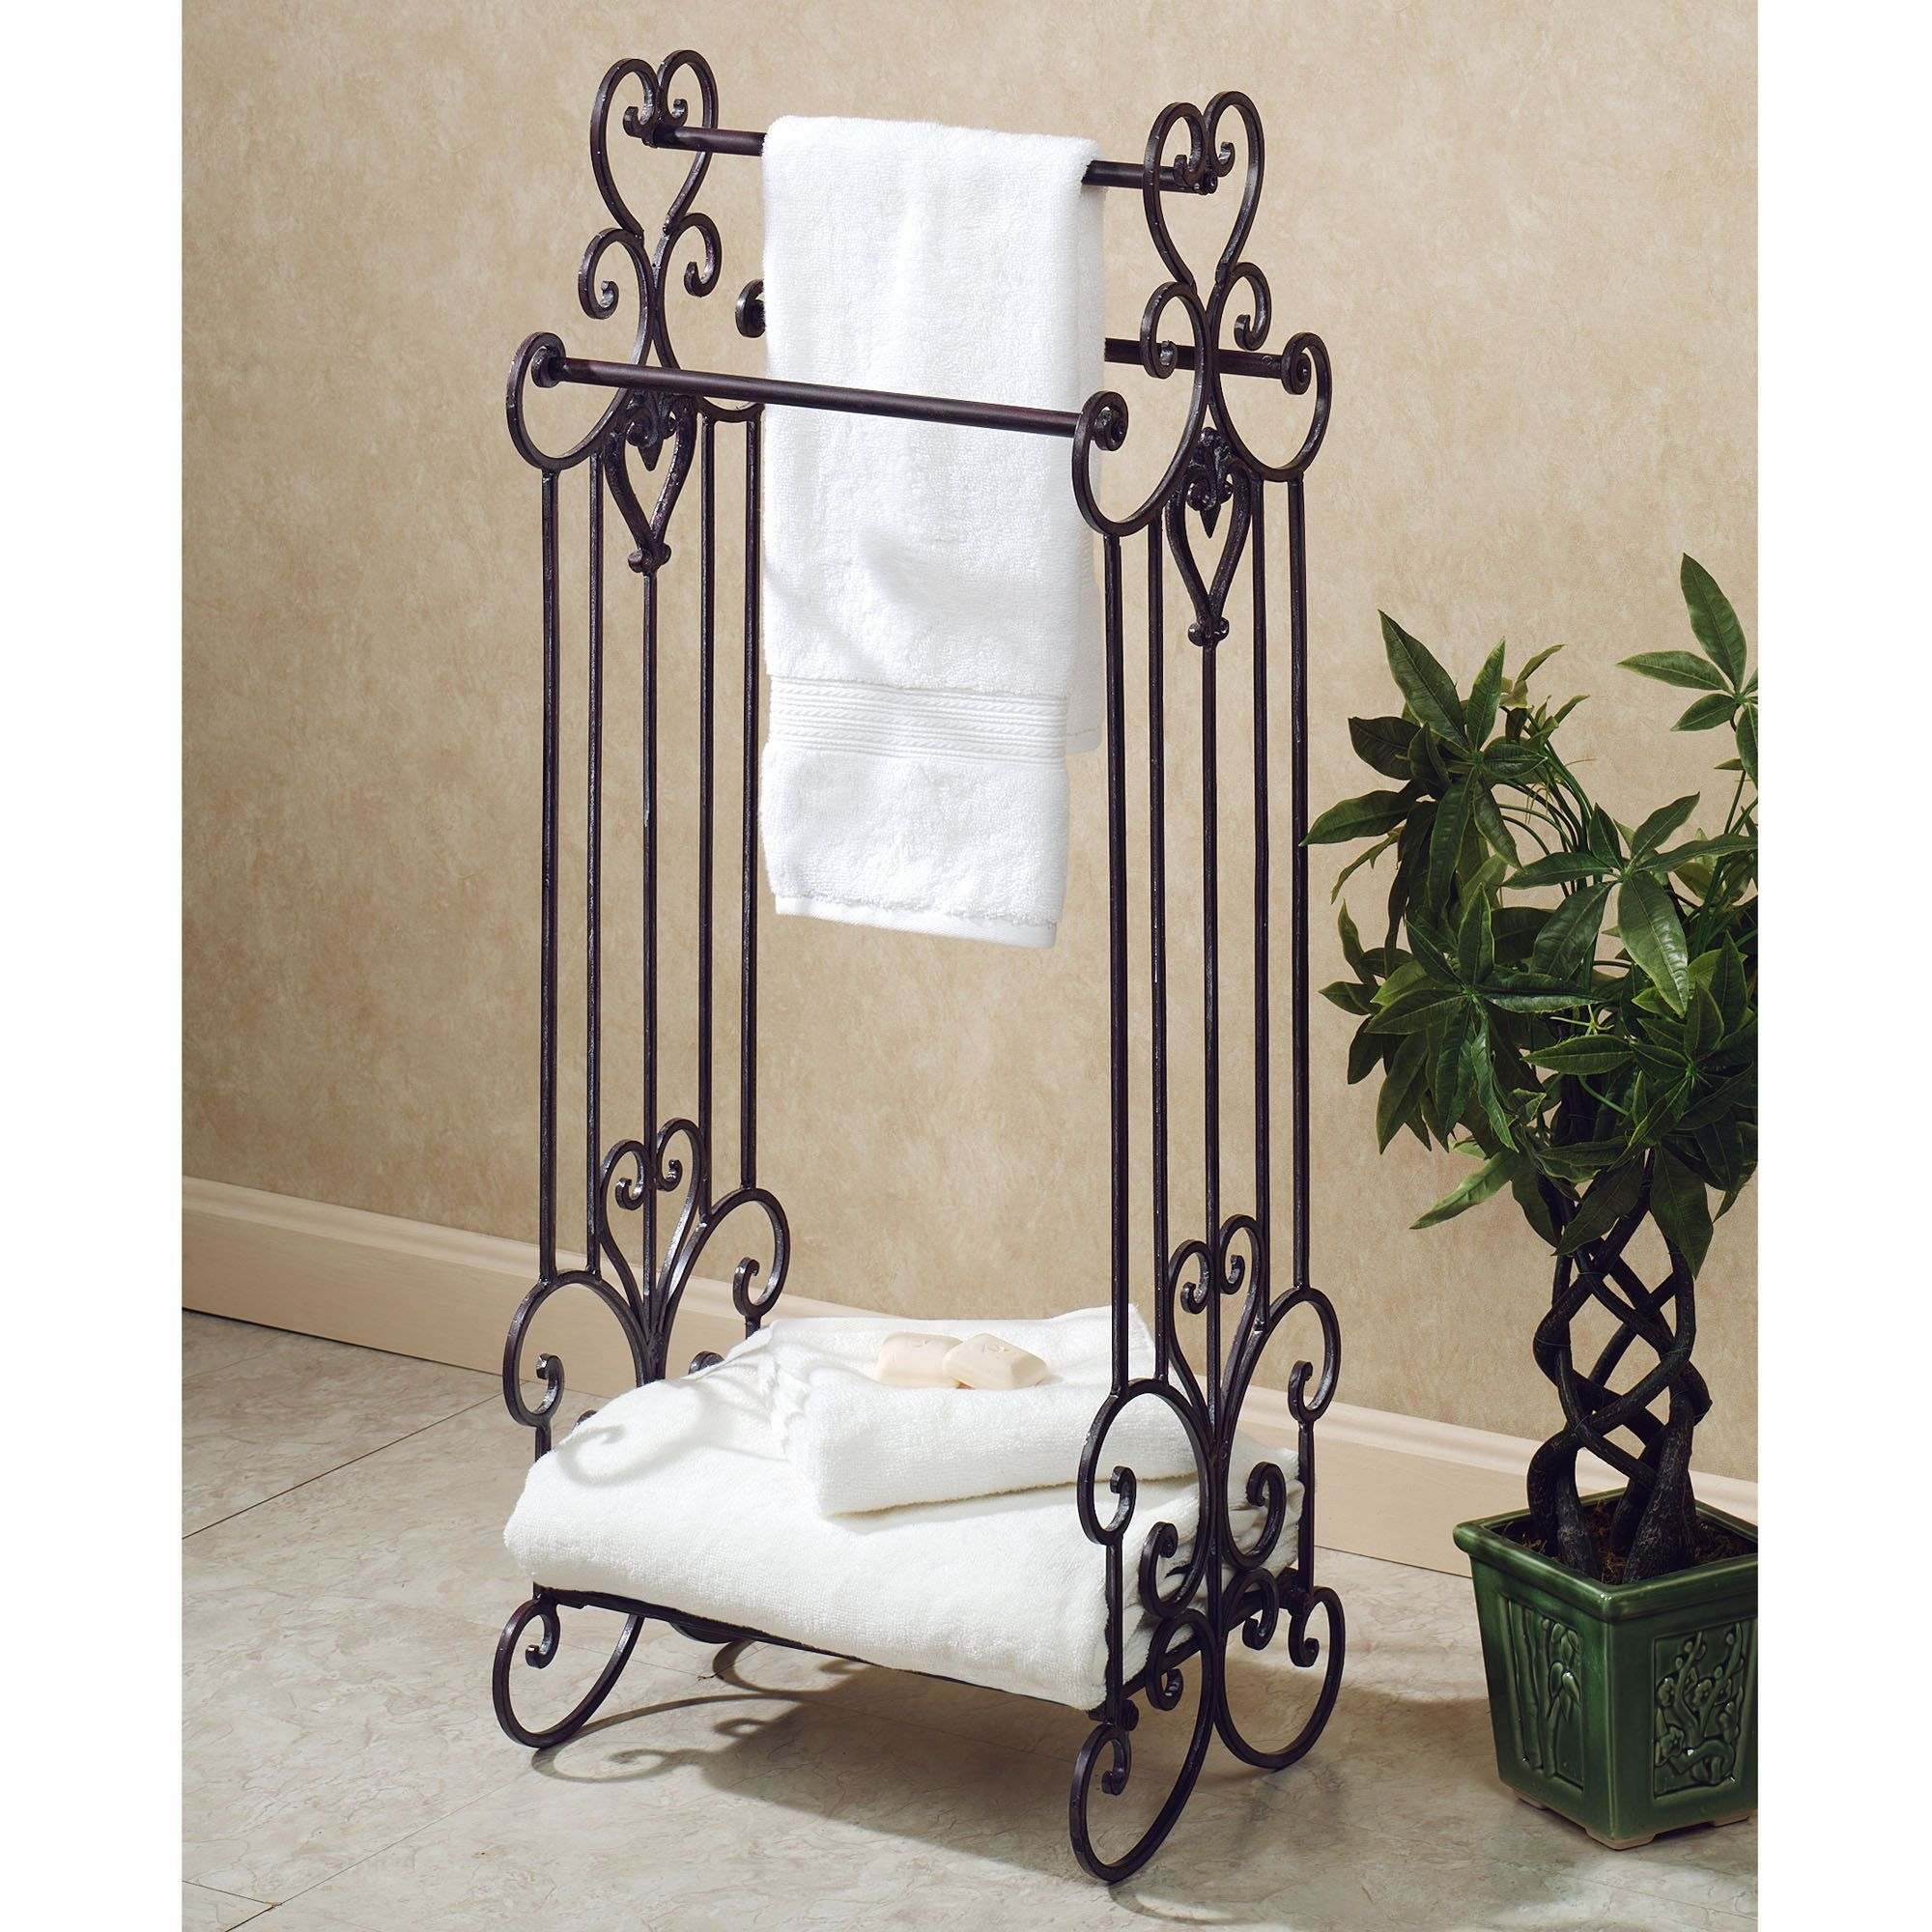 Standing Towel Rack For Small Bathroom